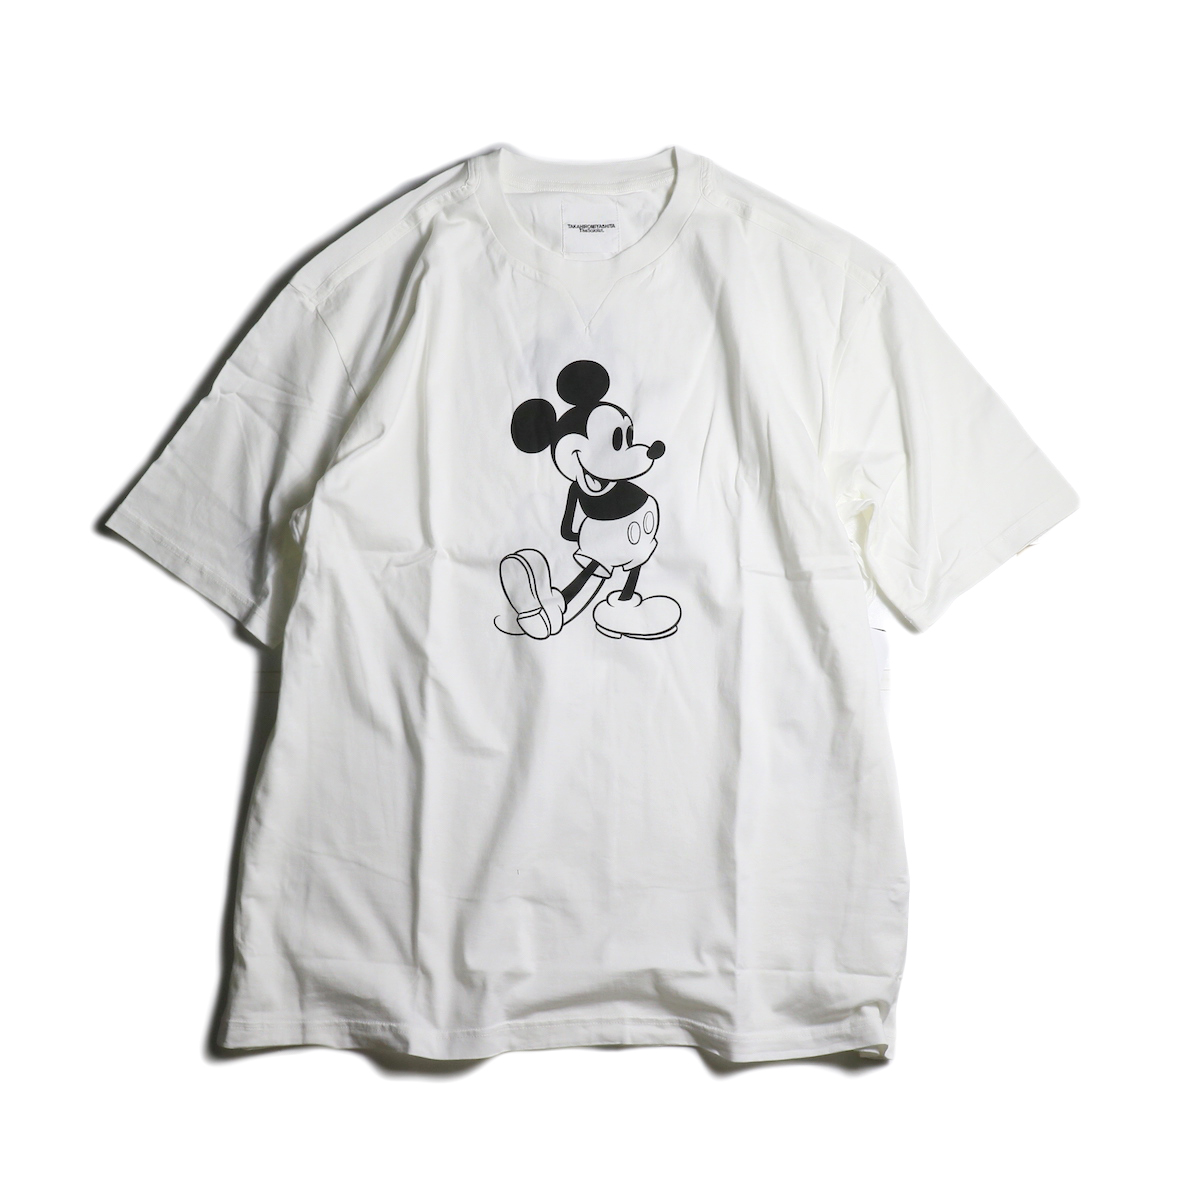 The Soloist / sc.0039bSS20 oversized Mickey Mouse crew neck s/s tee. (monotone color Mickey Mouse)(White×Monotone)